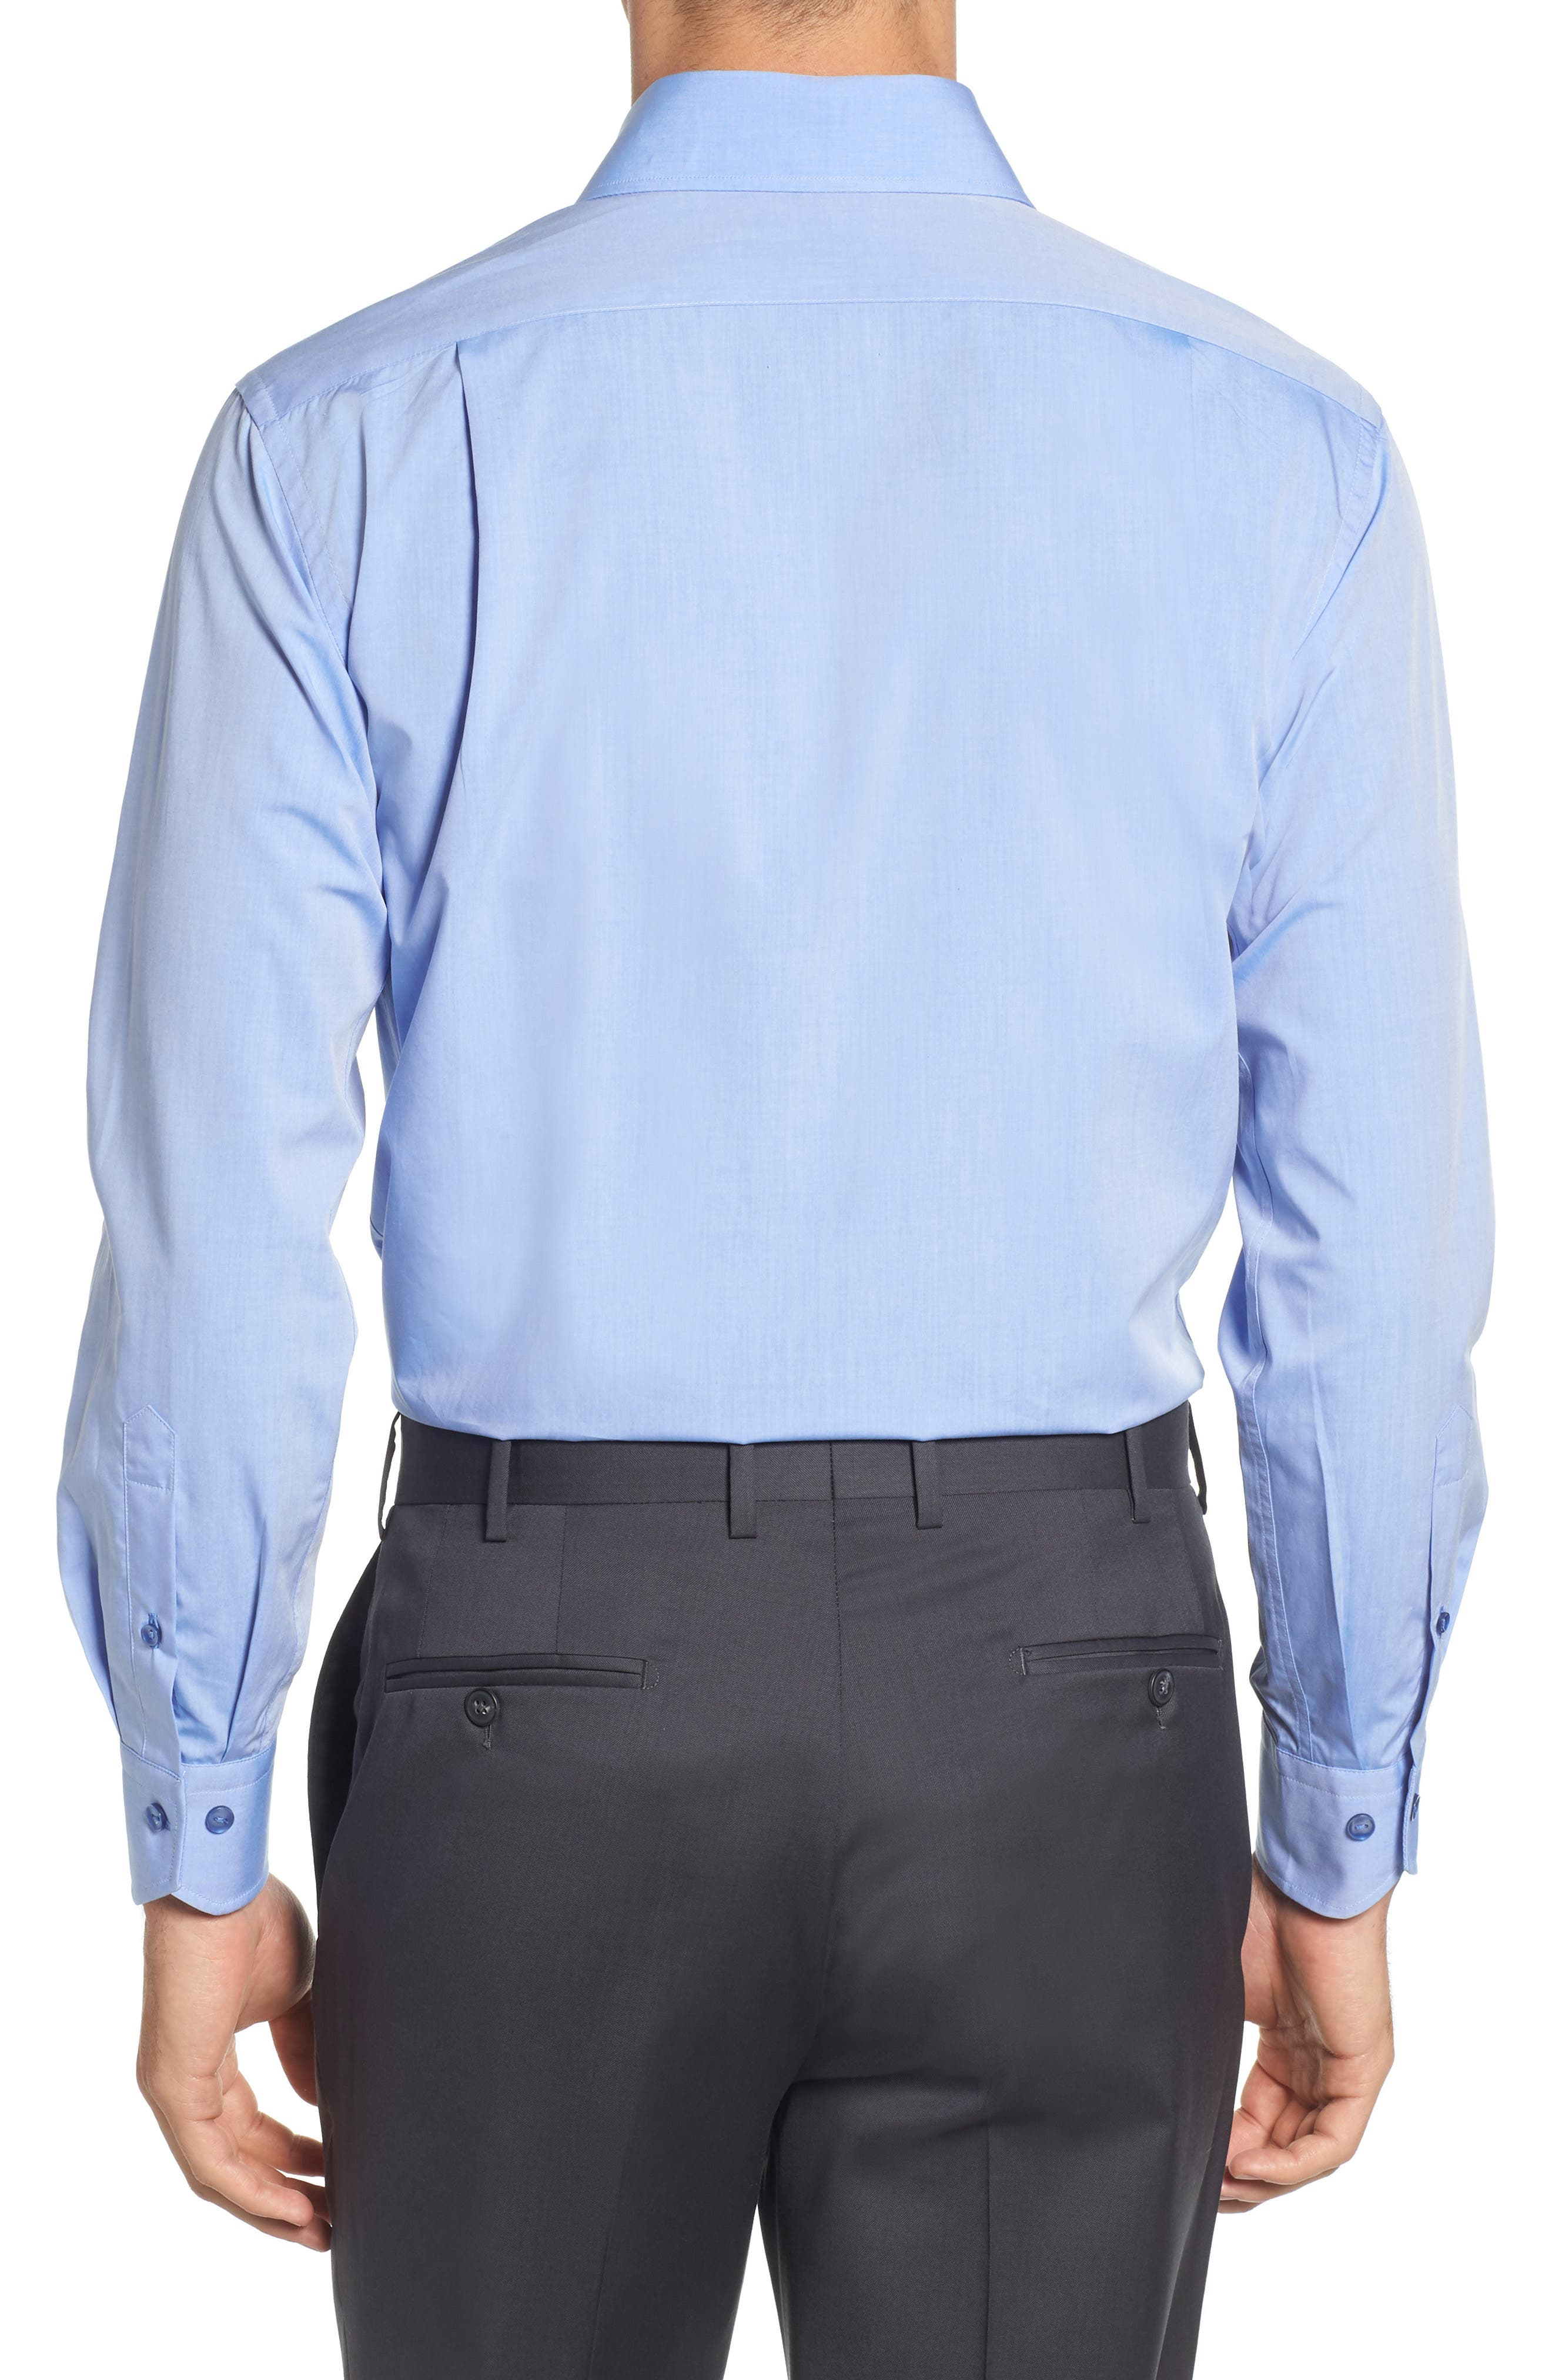 Trim Fit Solid Dress Shirt,                             Alternate thumbnail 3, color,                             BLUE